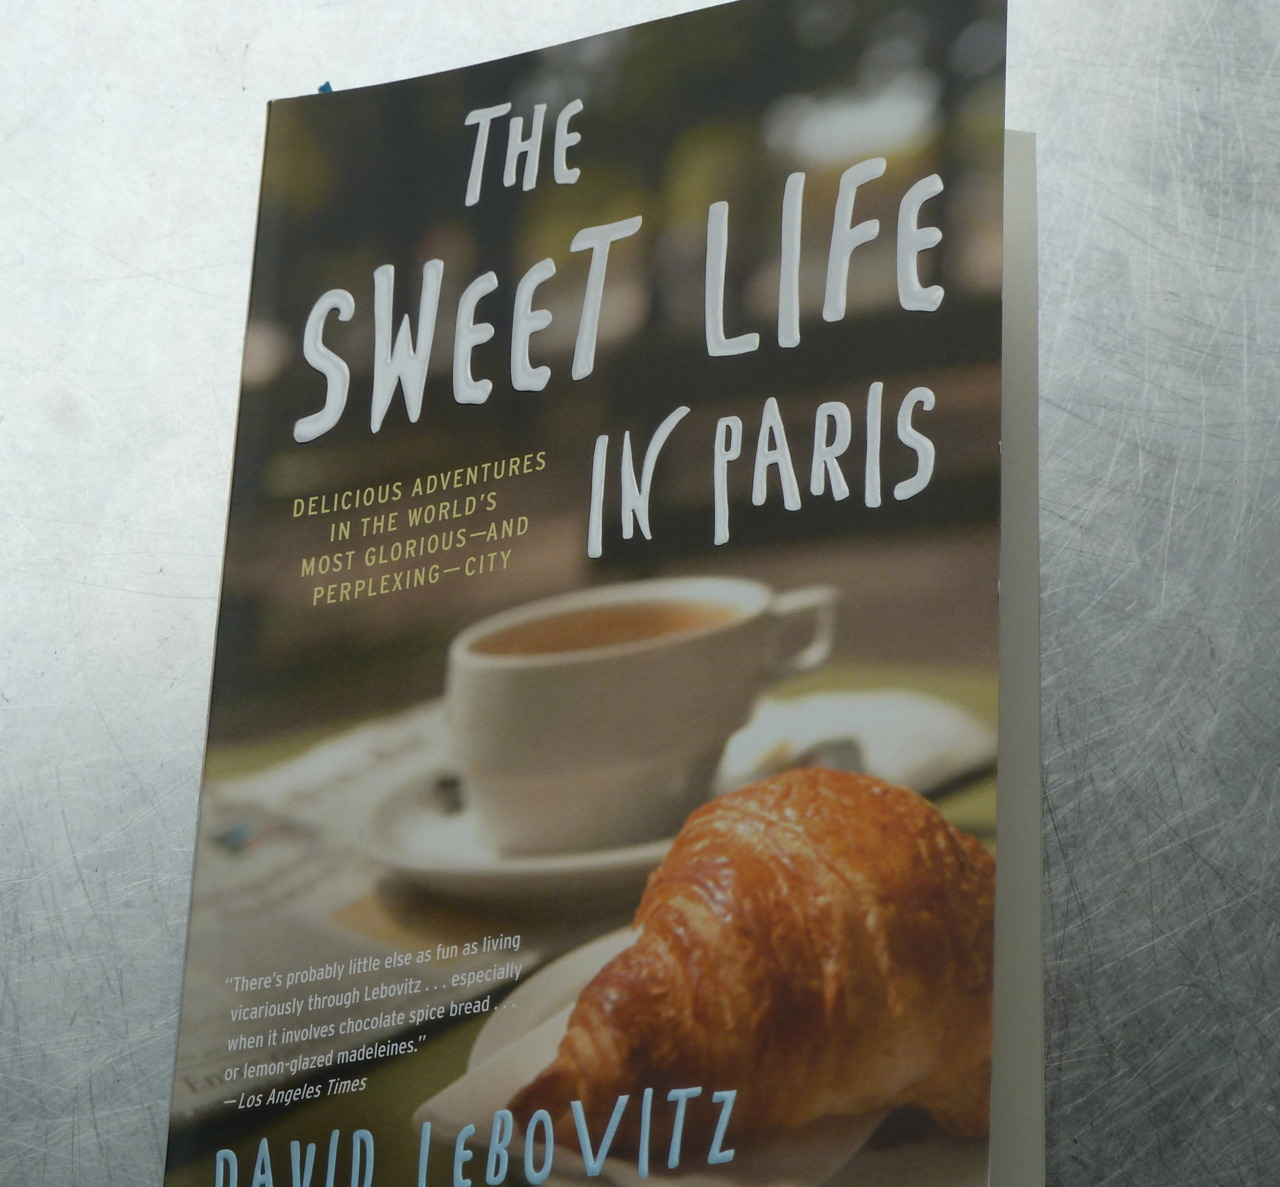 We Heart David Lebovitz! Chef extraordinaire, David Lebovitz, has just released his new book outlining scrumptious Parisian findings and food for thought. Like him, we always have room for dessert.  Available now at all three Drake General Stores!